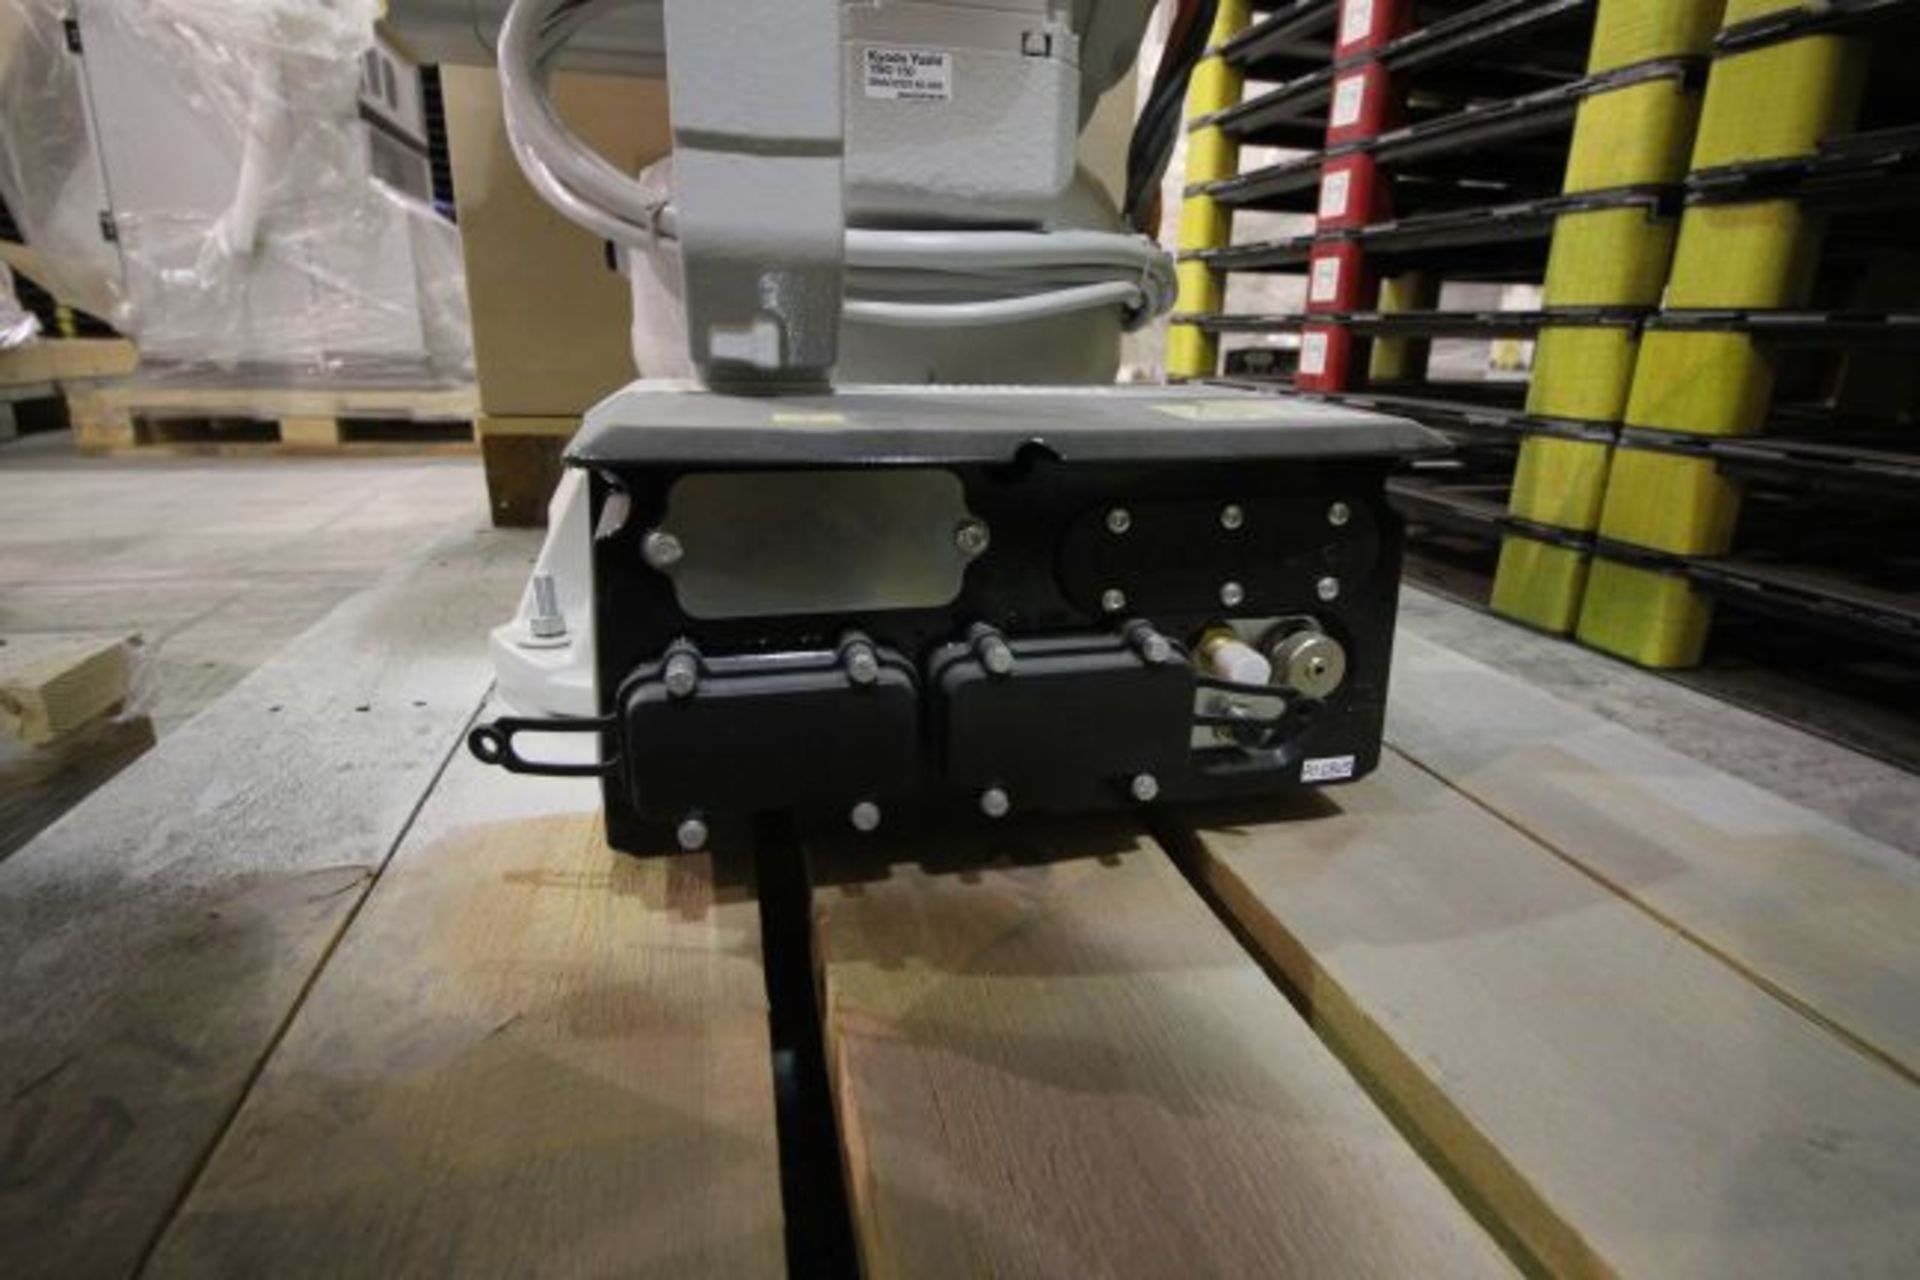 ABB ROBOT IRB 4600 2.55/40KG WITH IRC5 CONTROLS, YEAR 2015, 101896 TEACH PENDANT& CABLES - Image 5 of 11